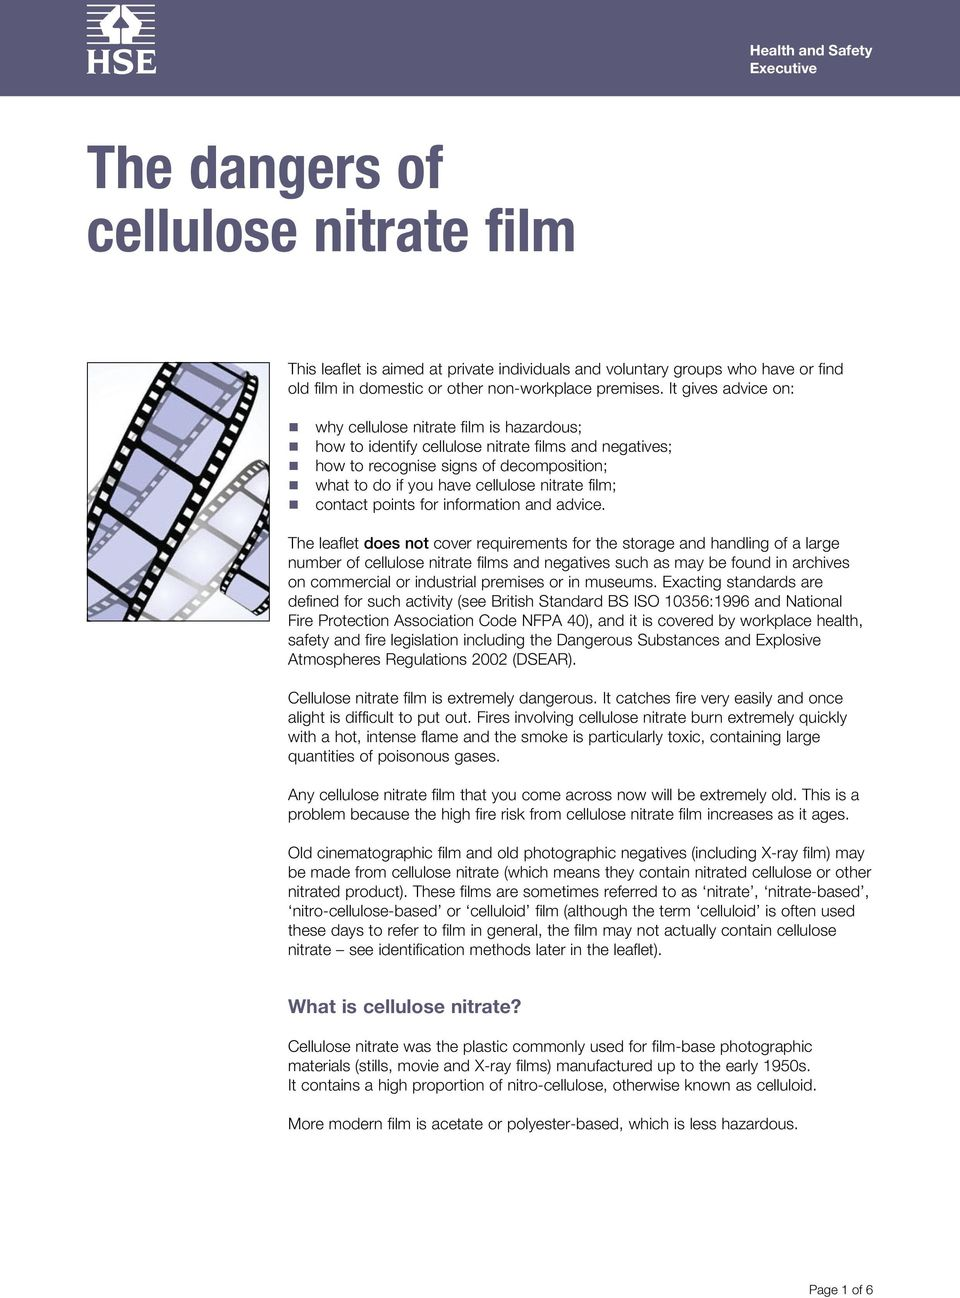 film; contact points for information and advice.